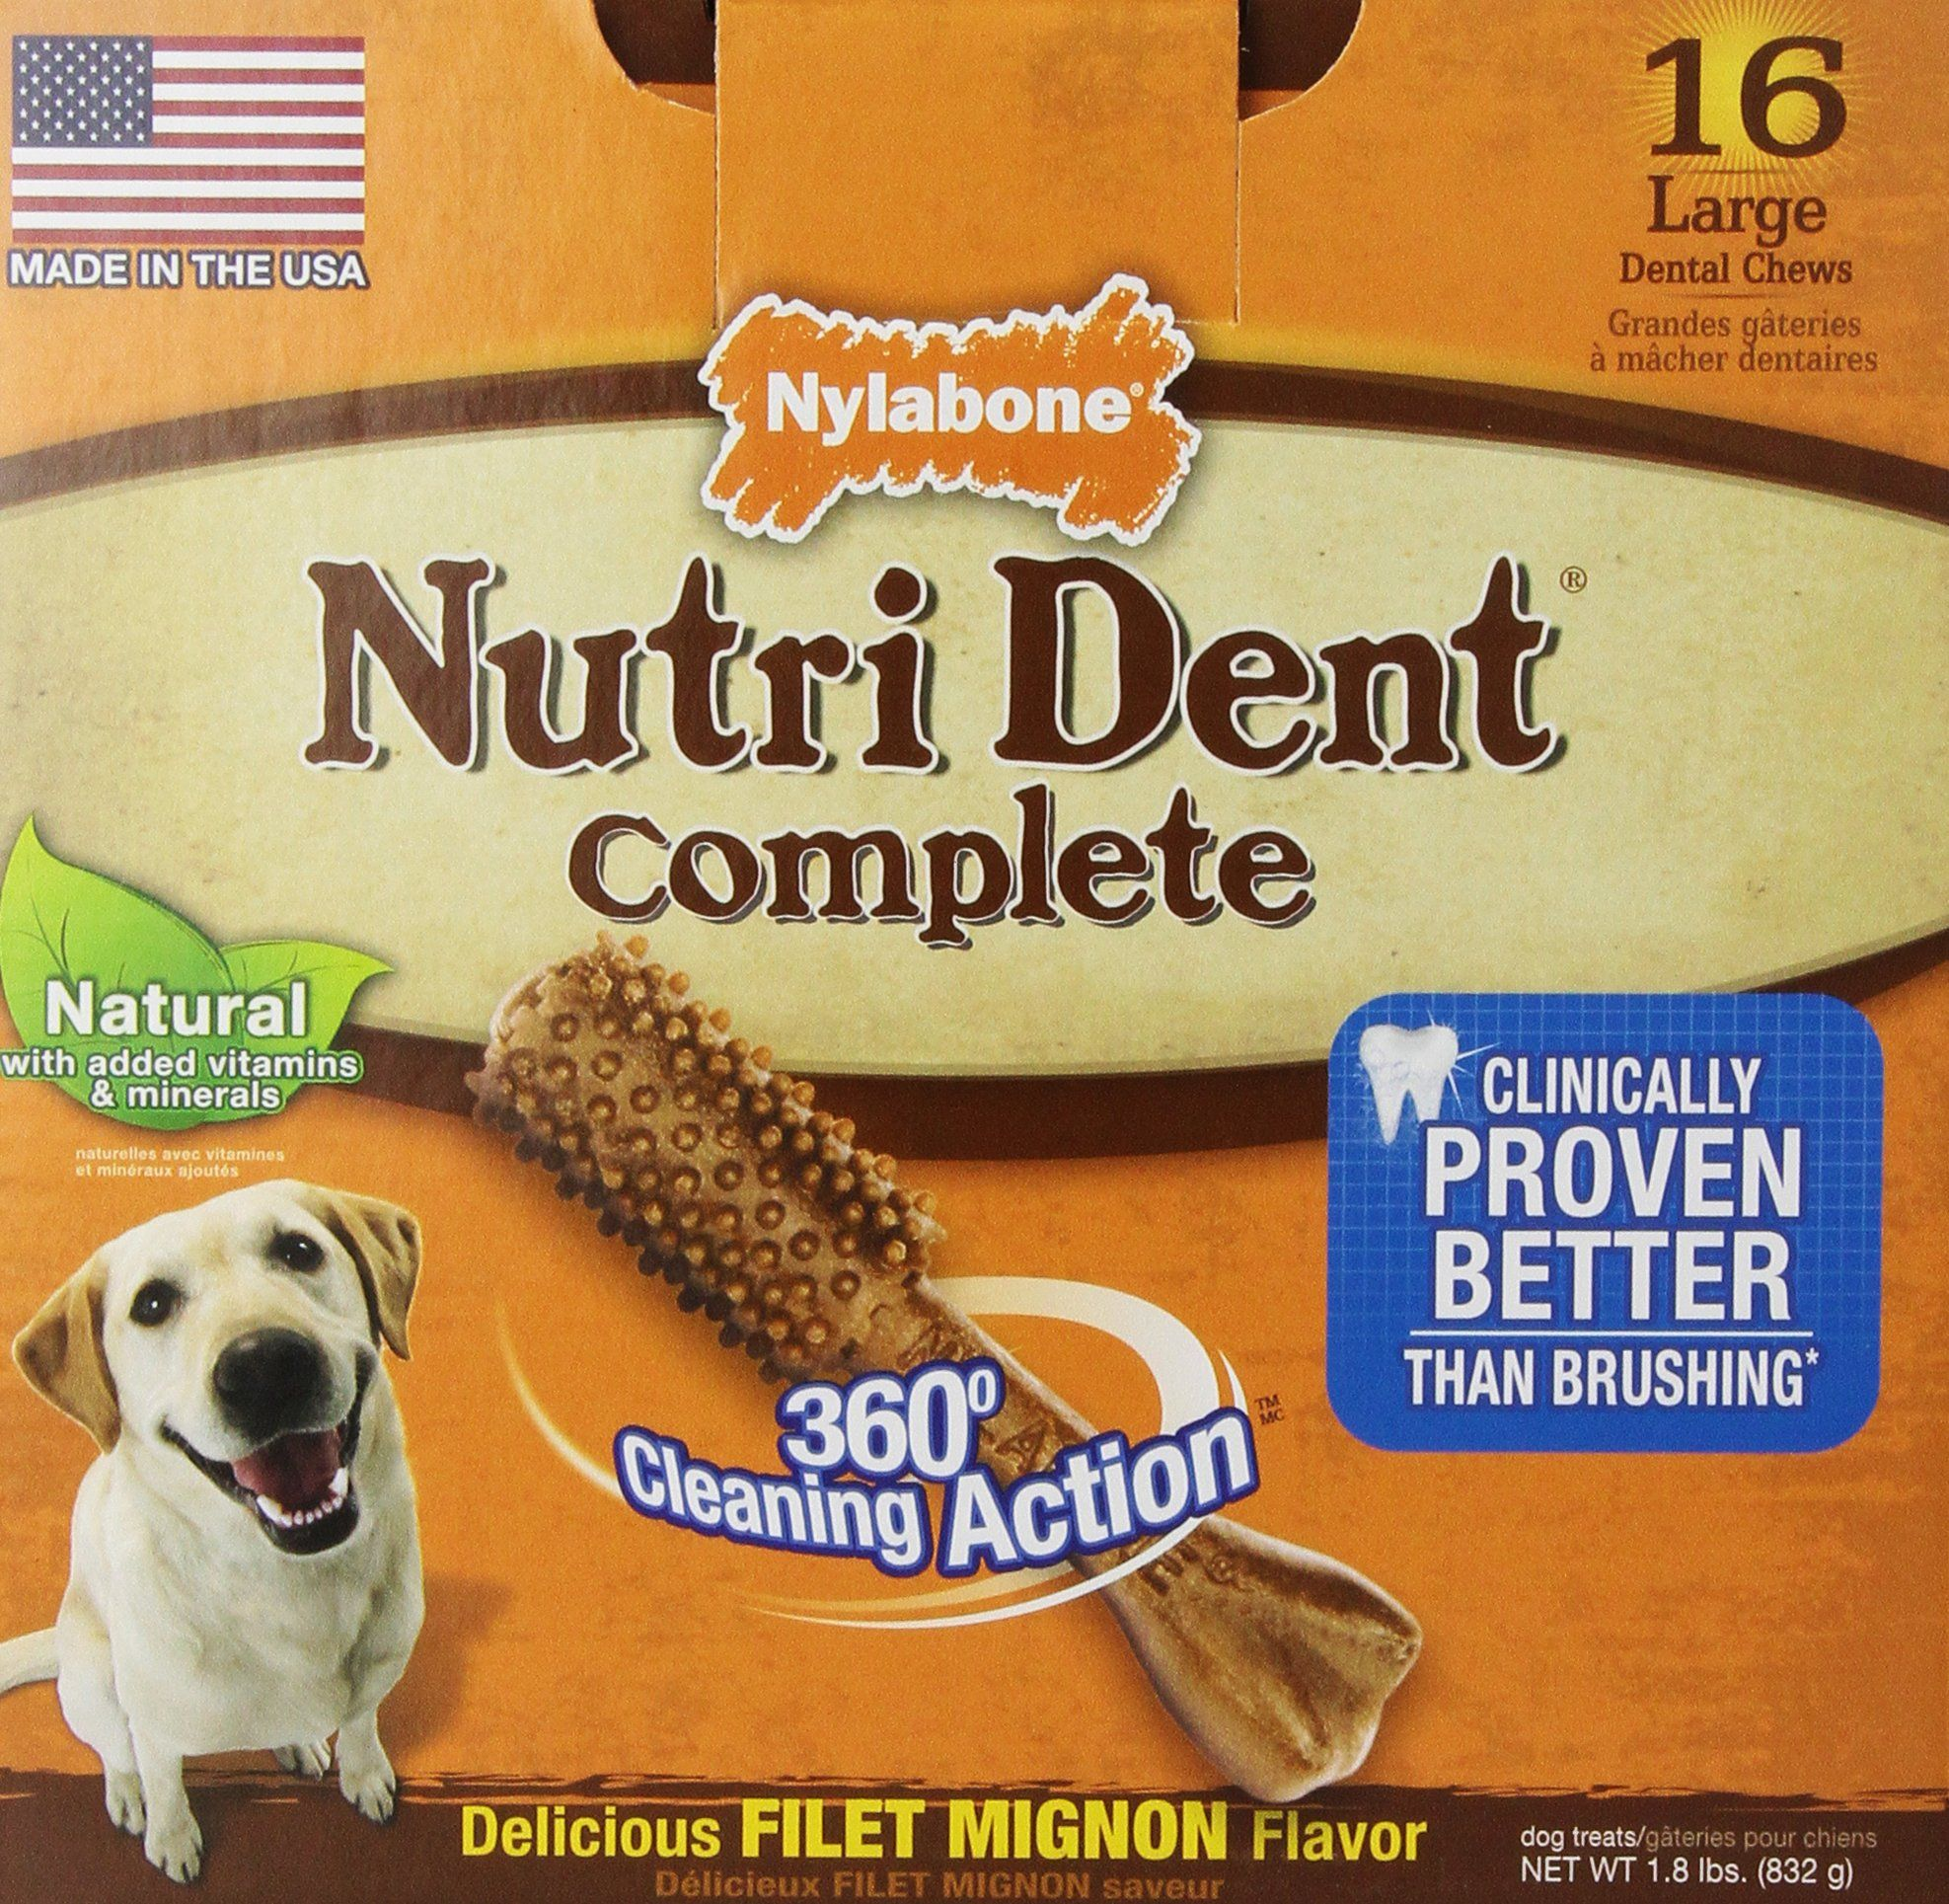 (LARGE, FILET MIGNON) Amazon.com : Nylabone Nutri Dent Dental Bone Dog Treat: Pet Chew Toys : Pet Supplies